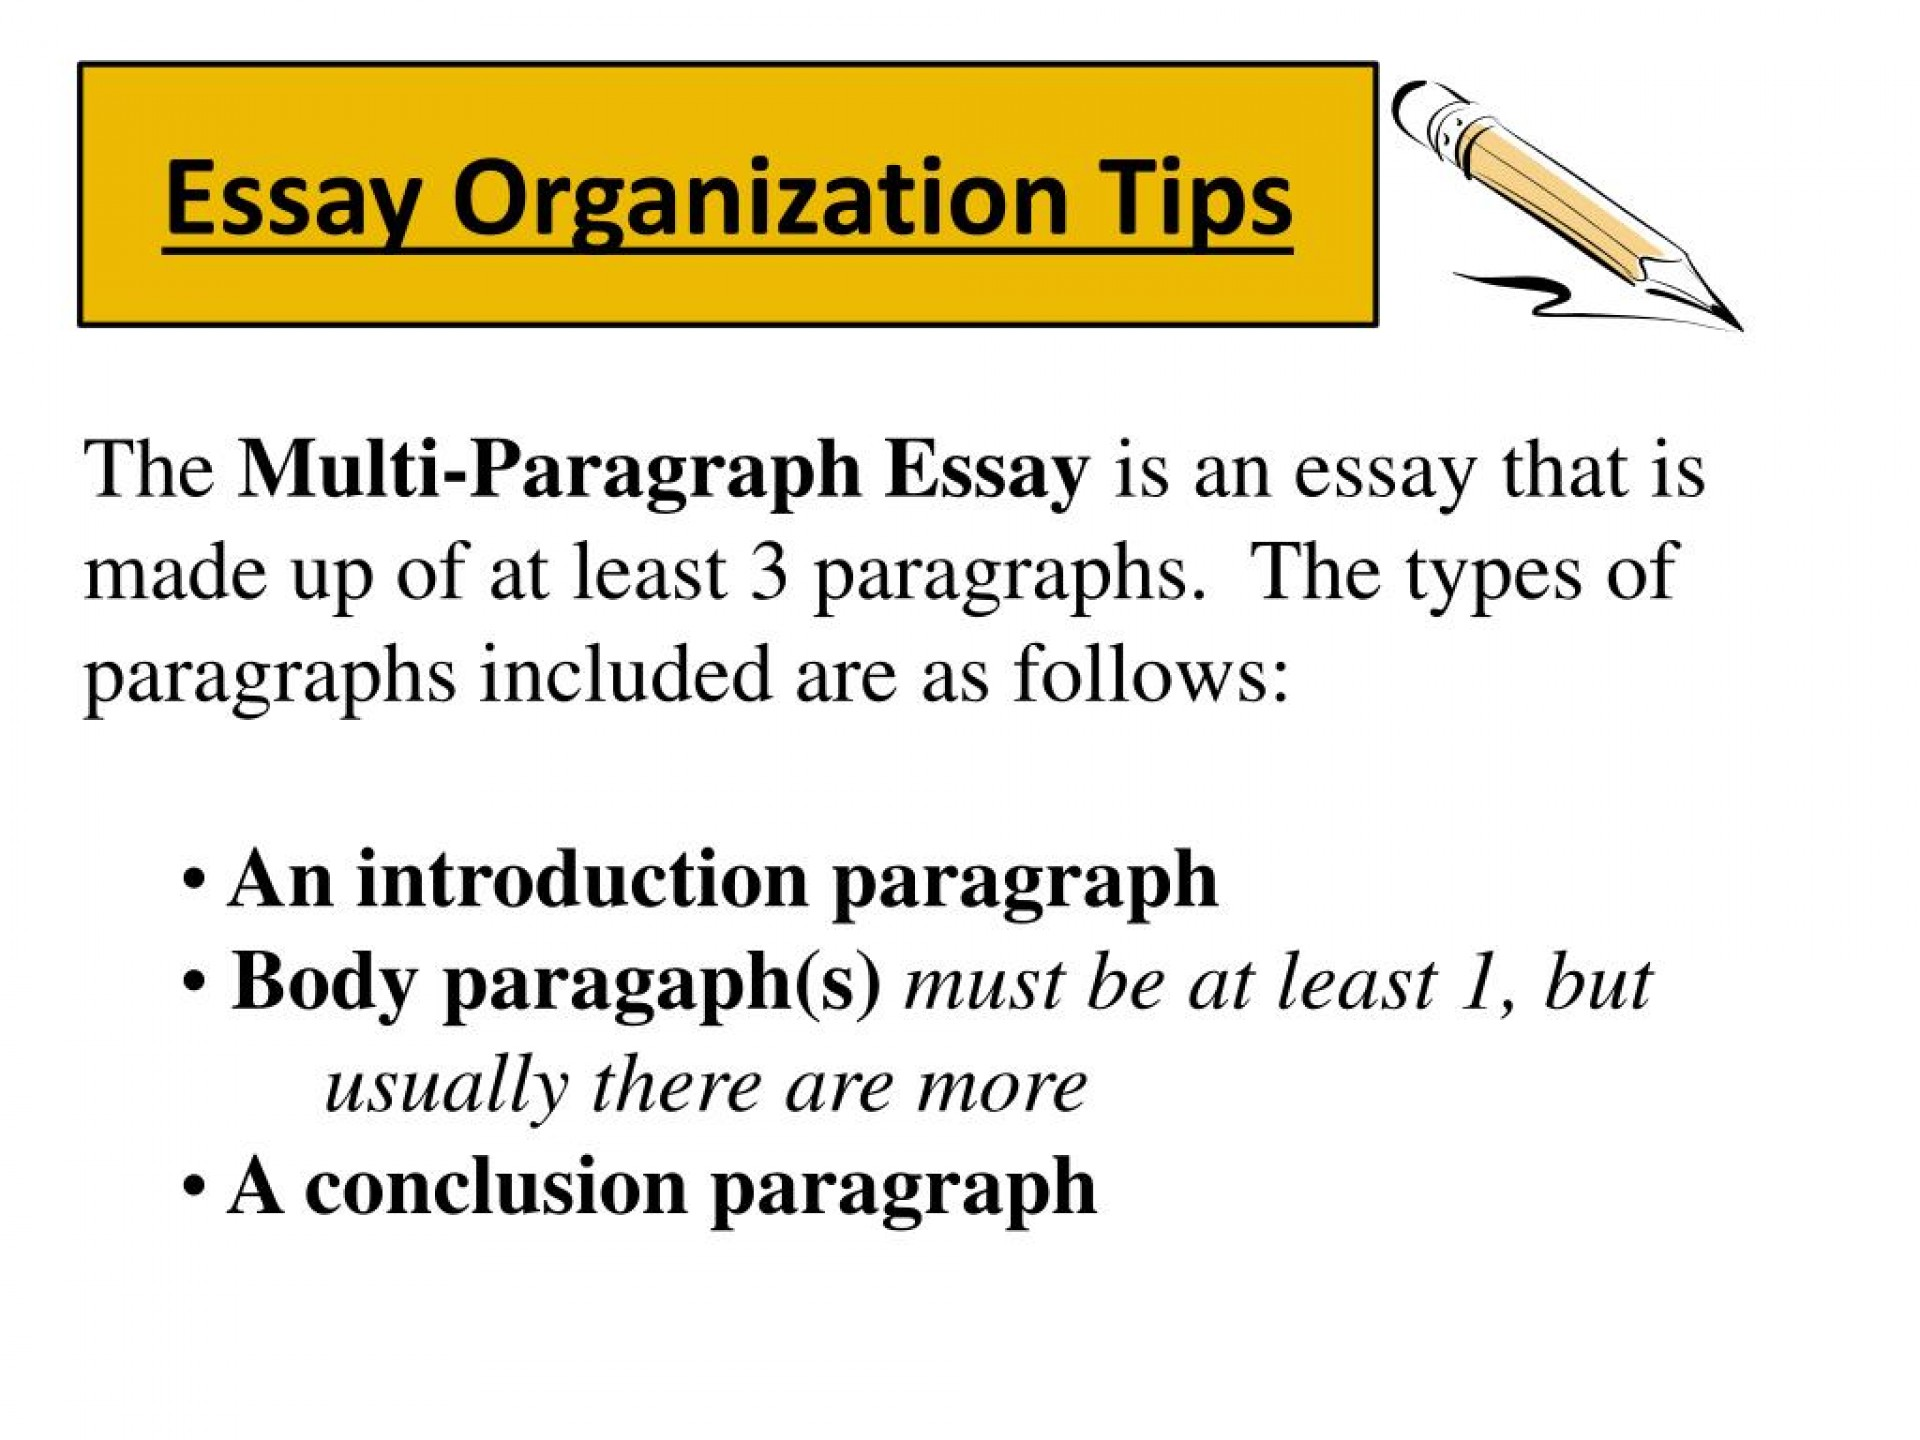 005 Essay Organization Tips L Multi Paragraph Best Graphic Organizer Outline 1920